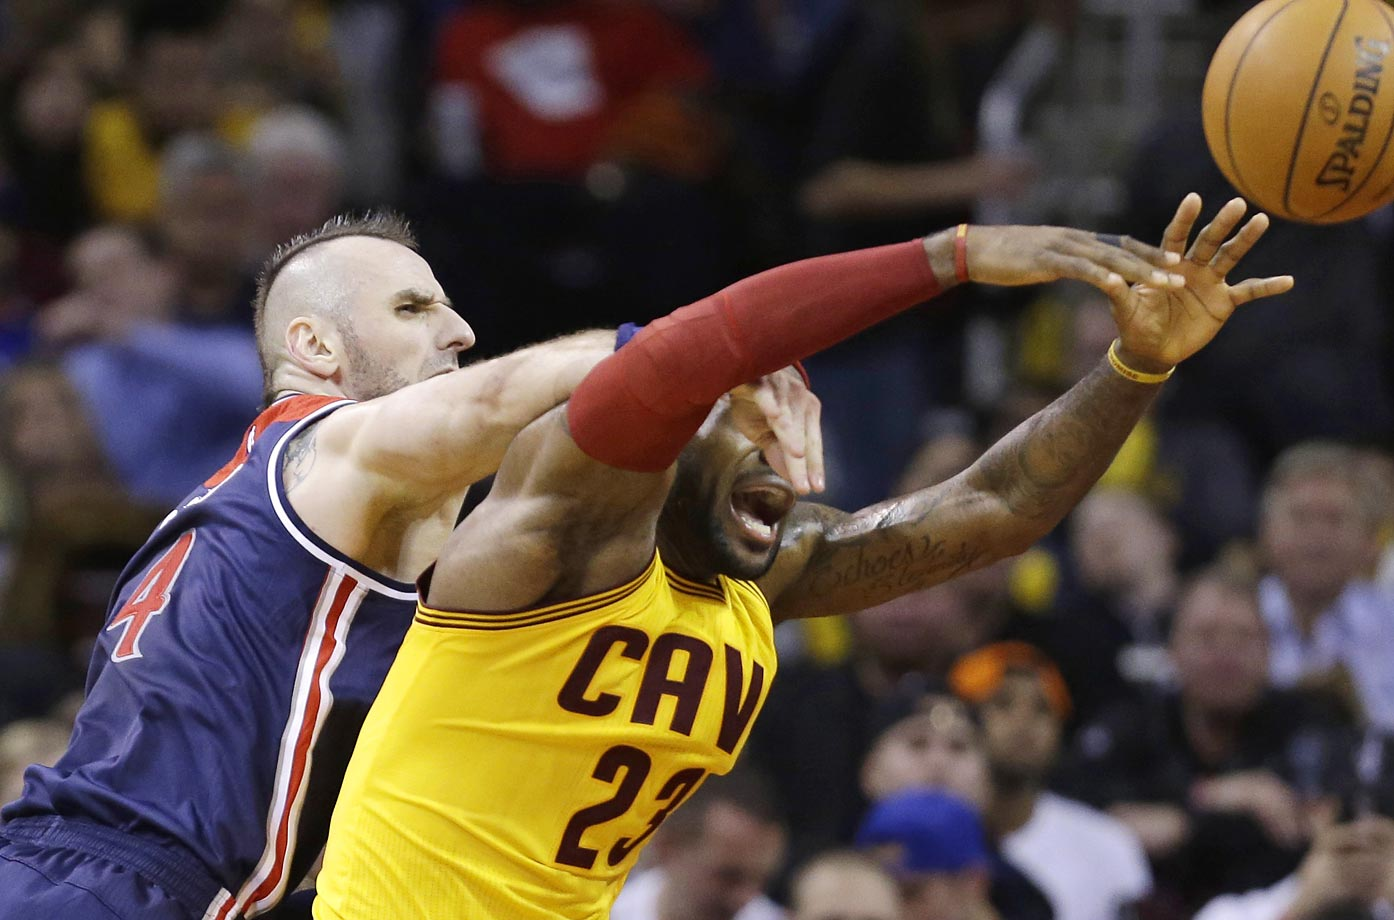 The Washington Wizards' Marcin Gortat fouls LeBron James during the Cavs' 113-87 win.